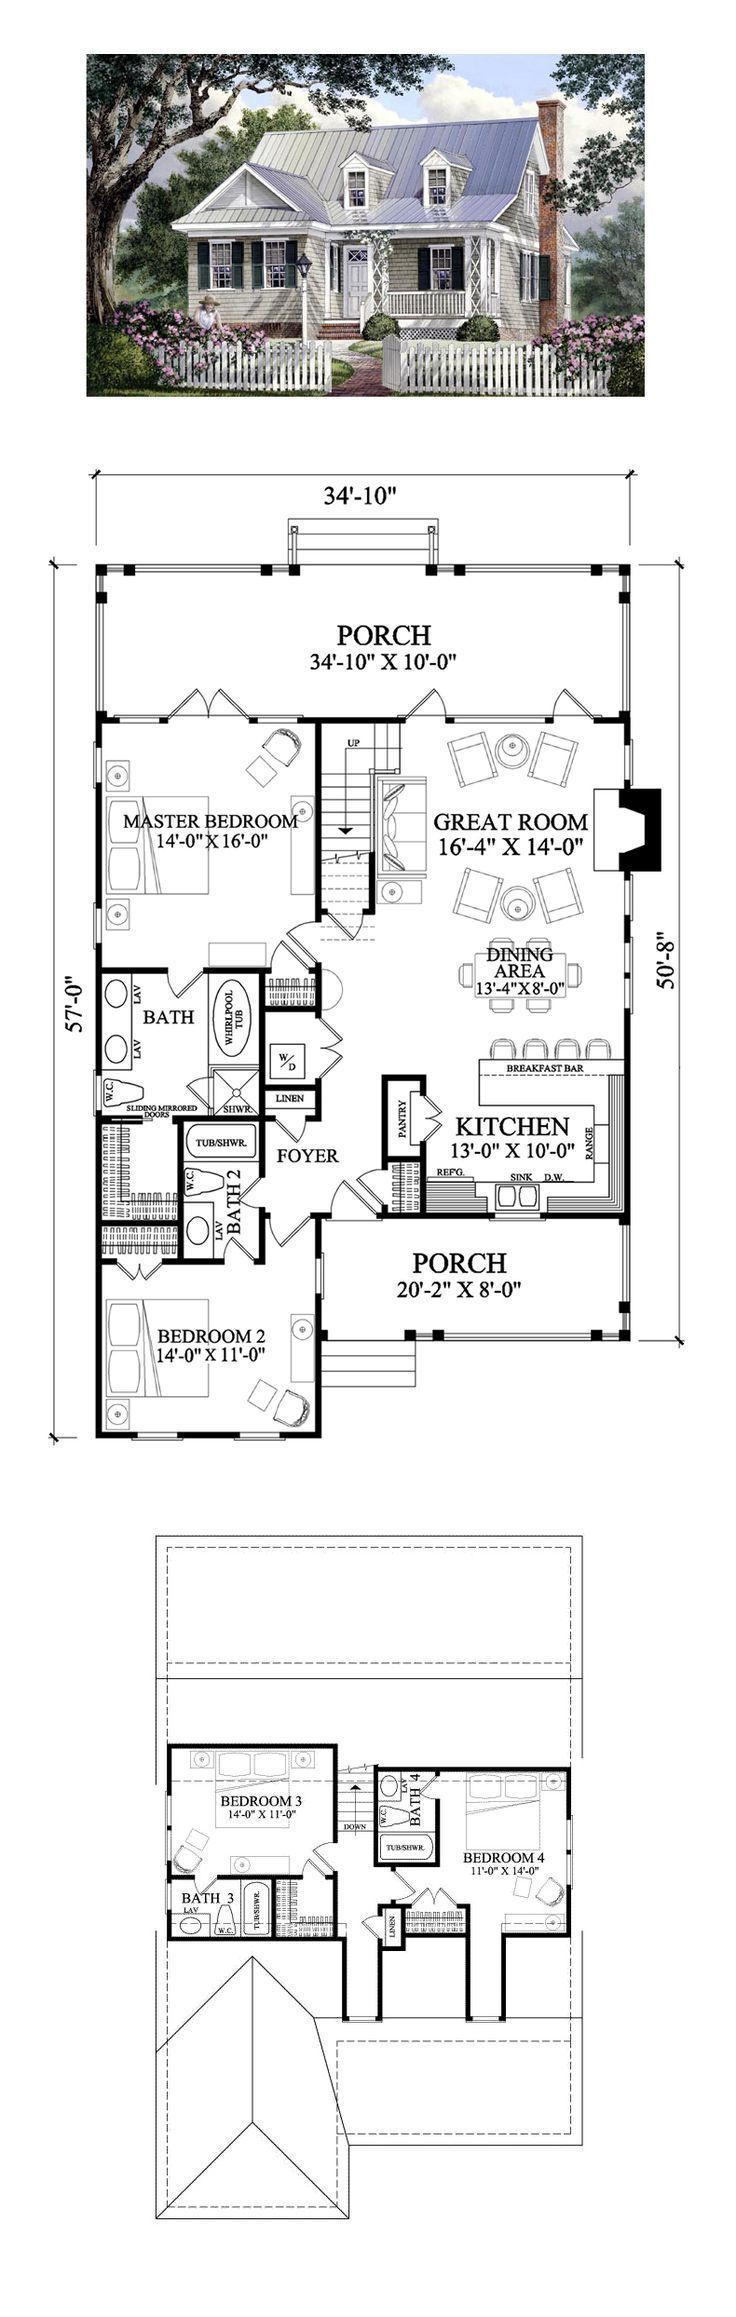 best 25 small country homes ideas on pinterest simple house best 25 small country homes ideas on pinterest simple house plans house design plans and starter home plans